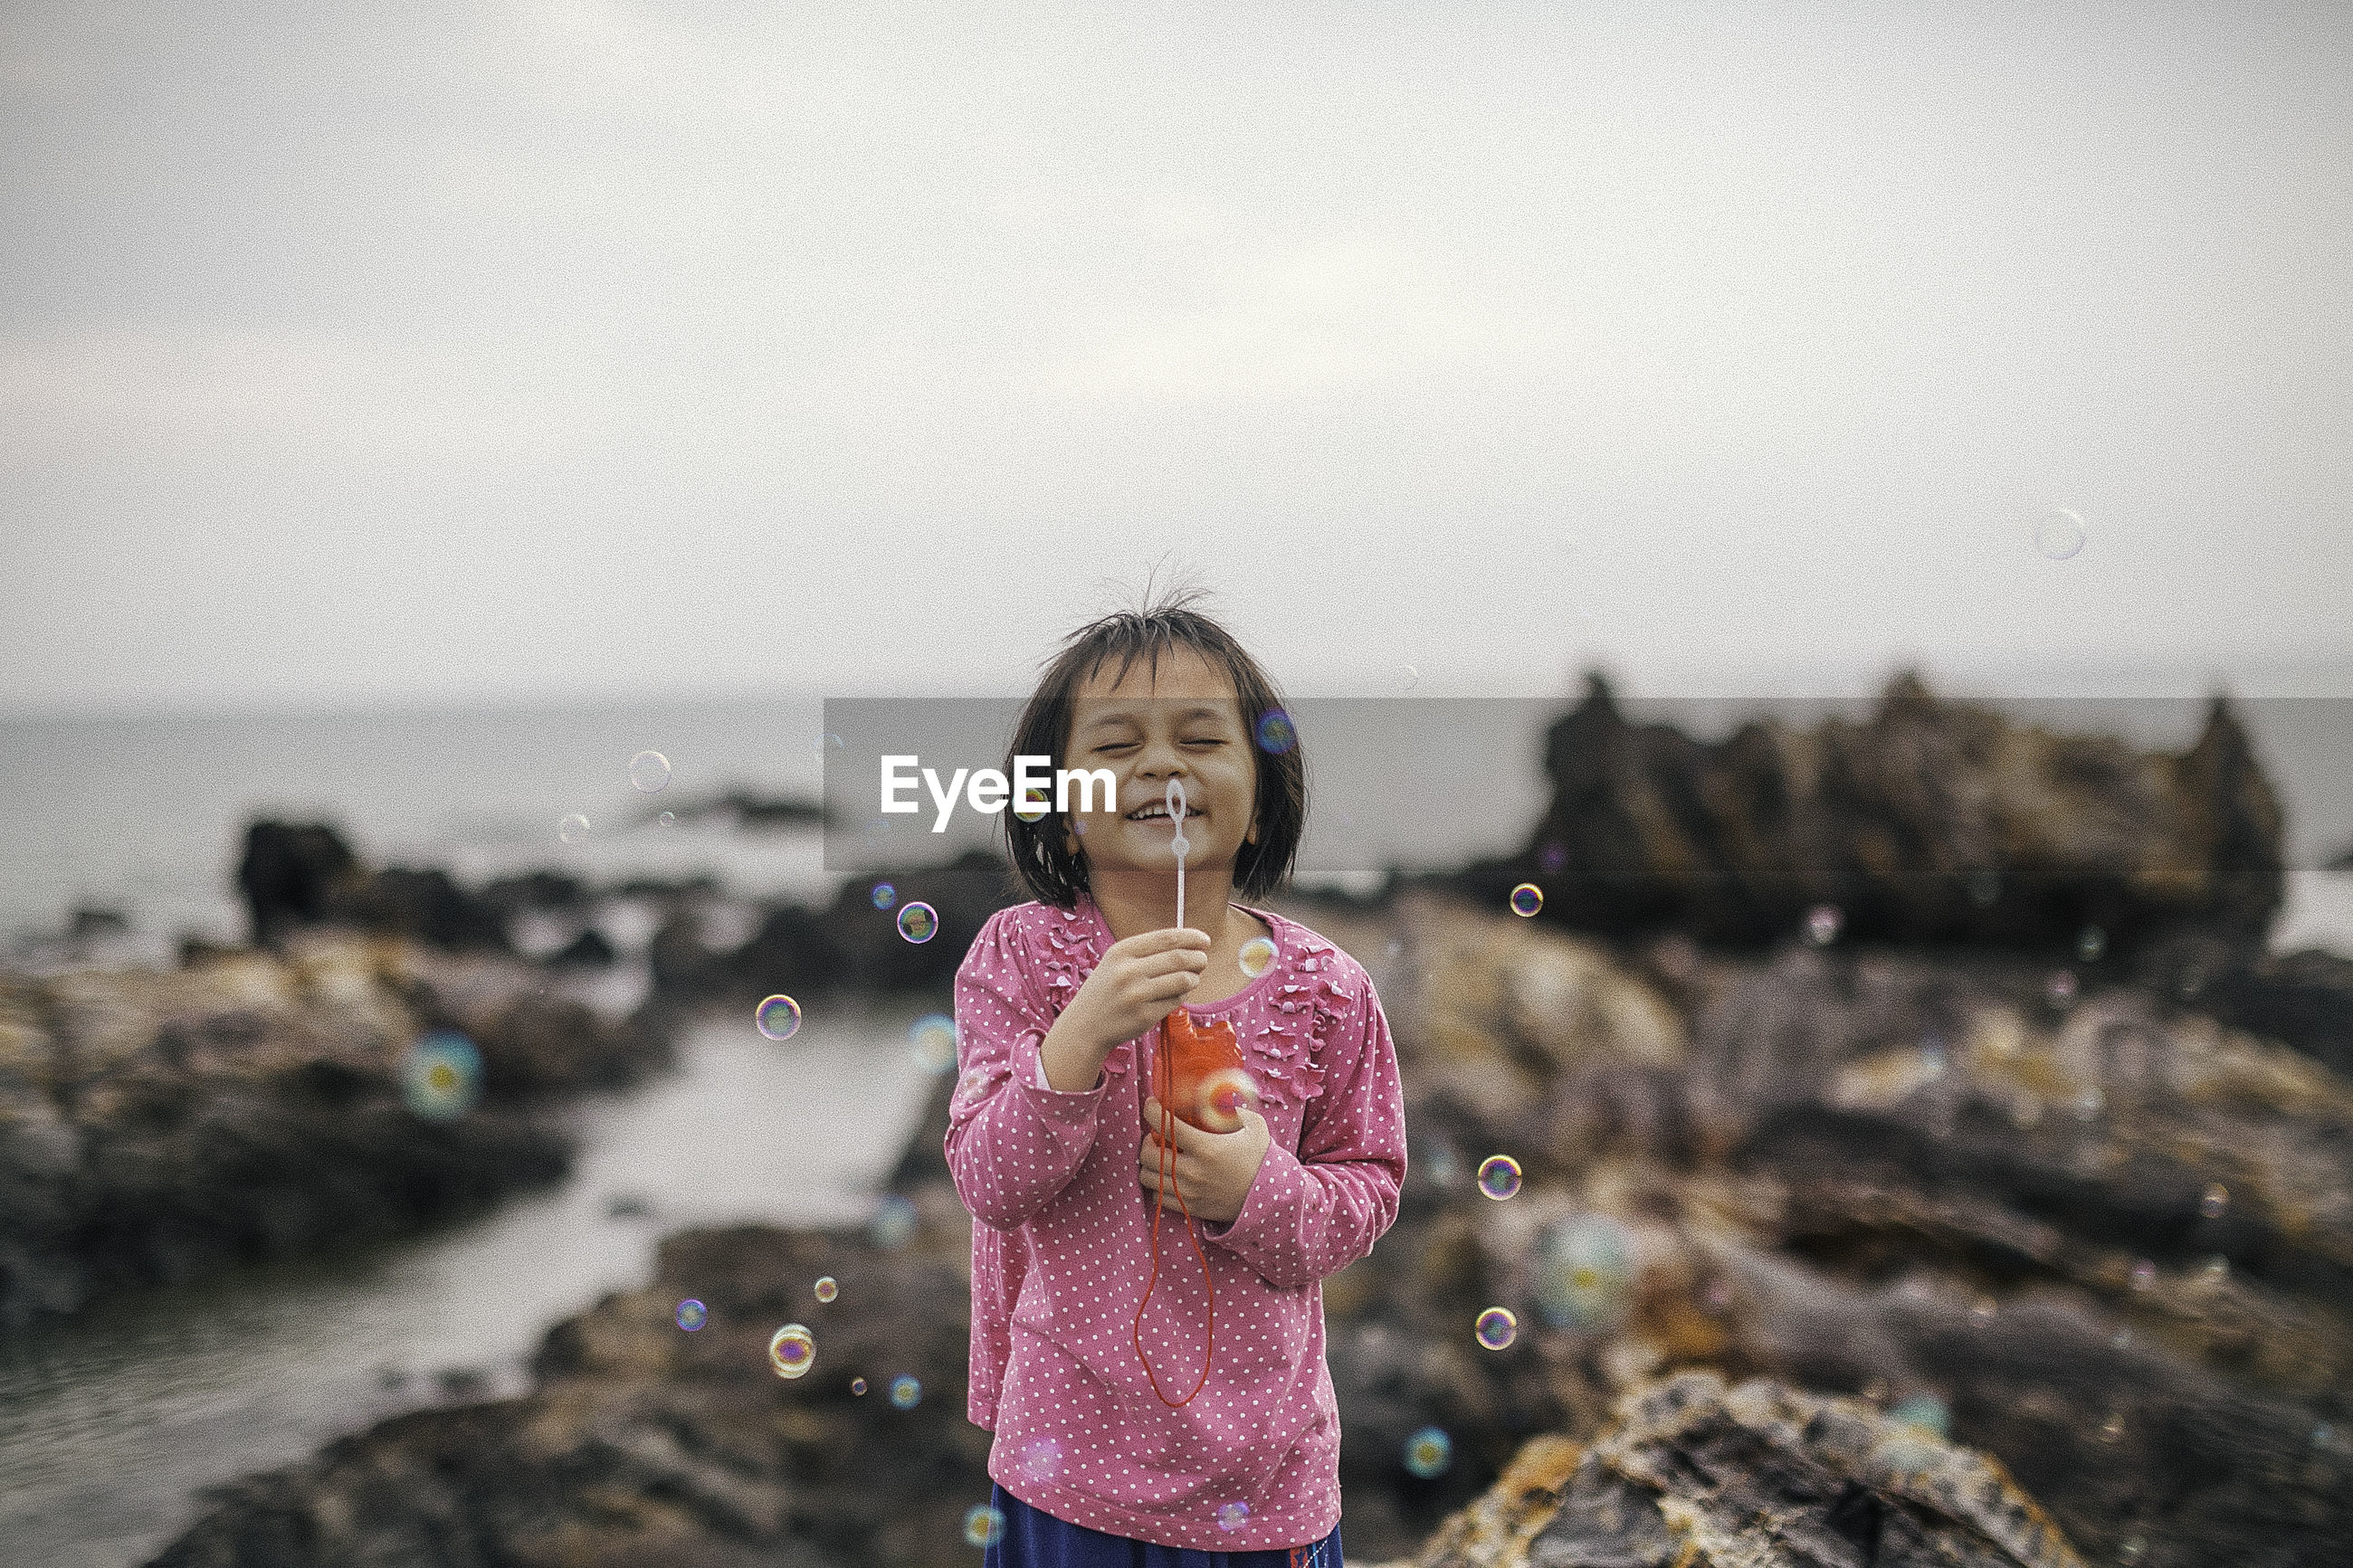 Portrait of girl holding bubble wand  against sky